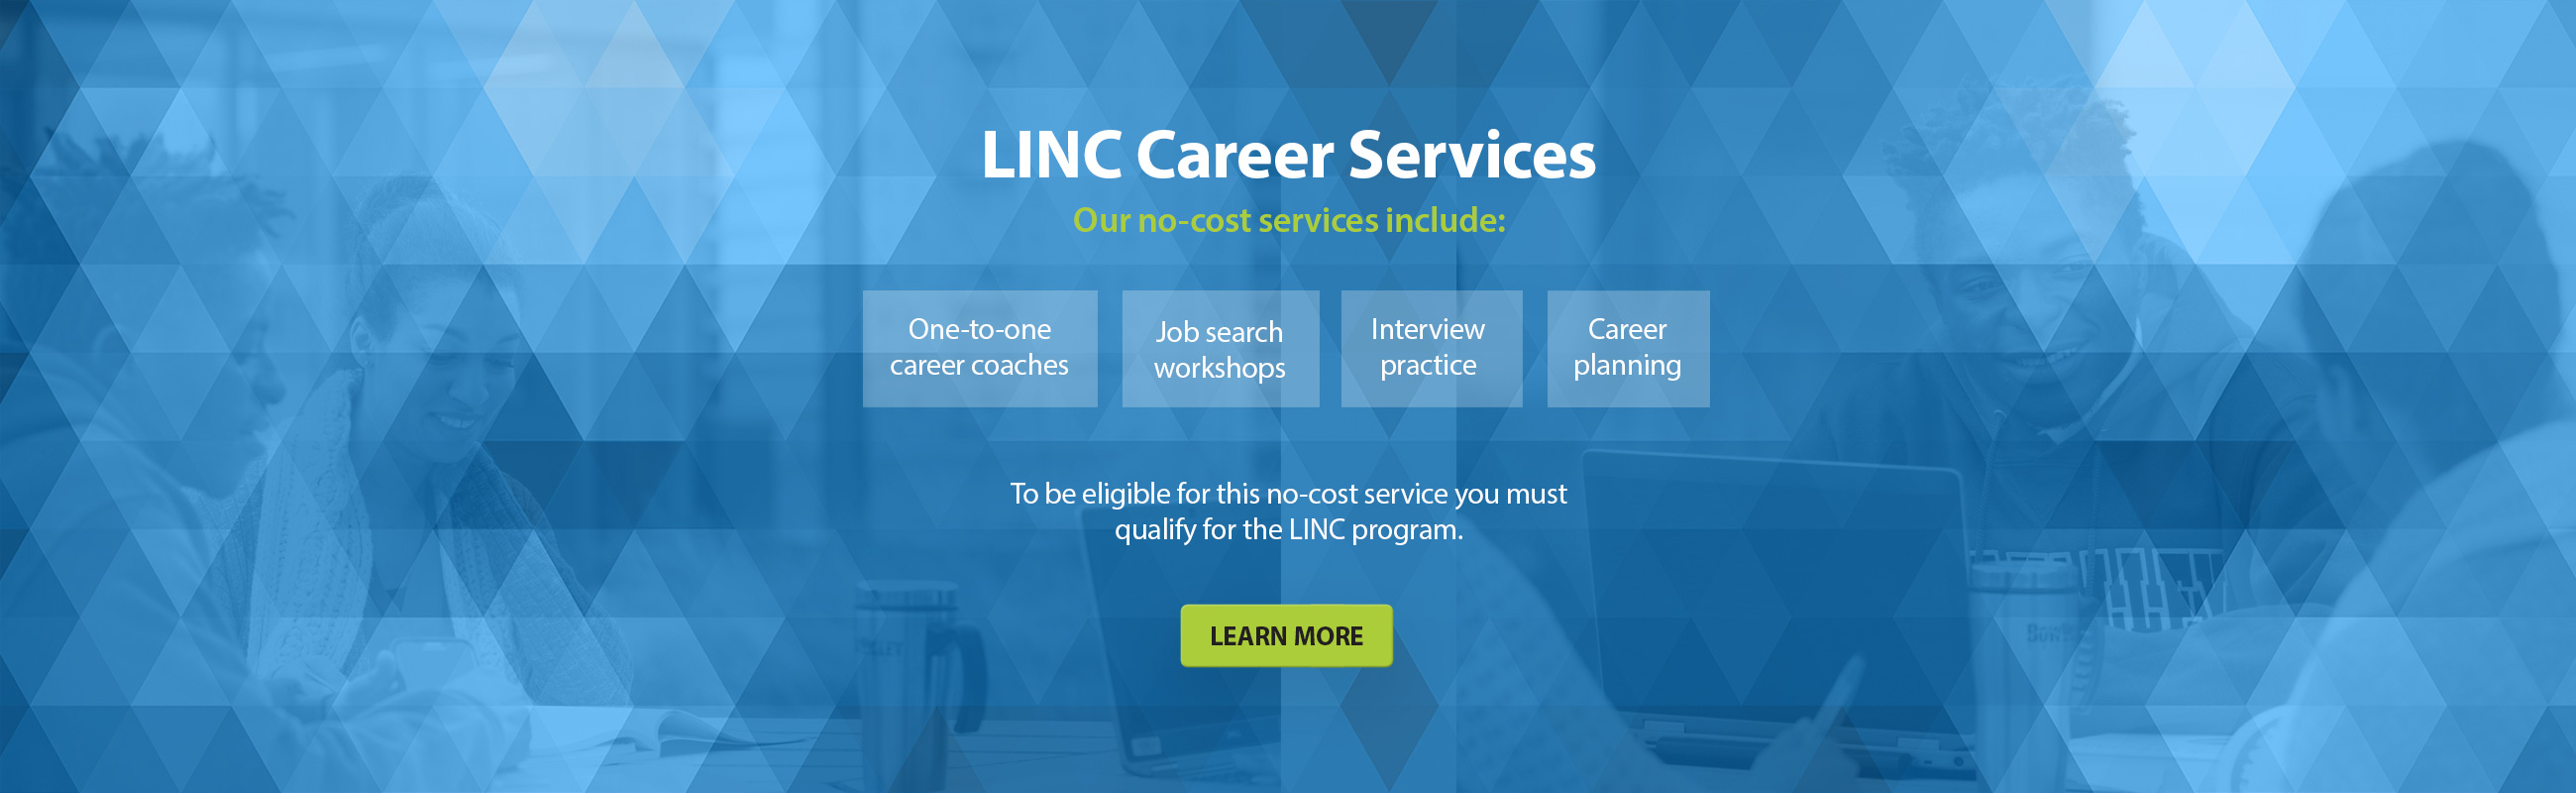 LINC Career Services